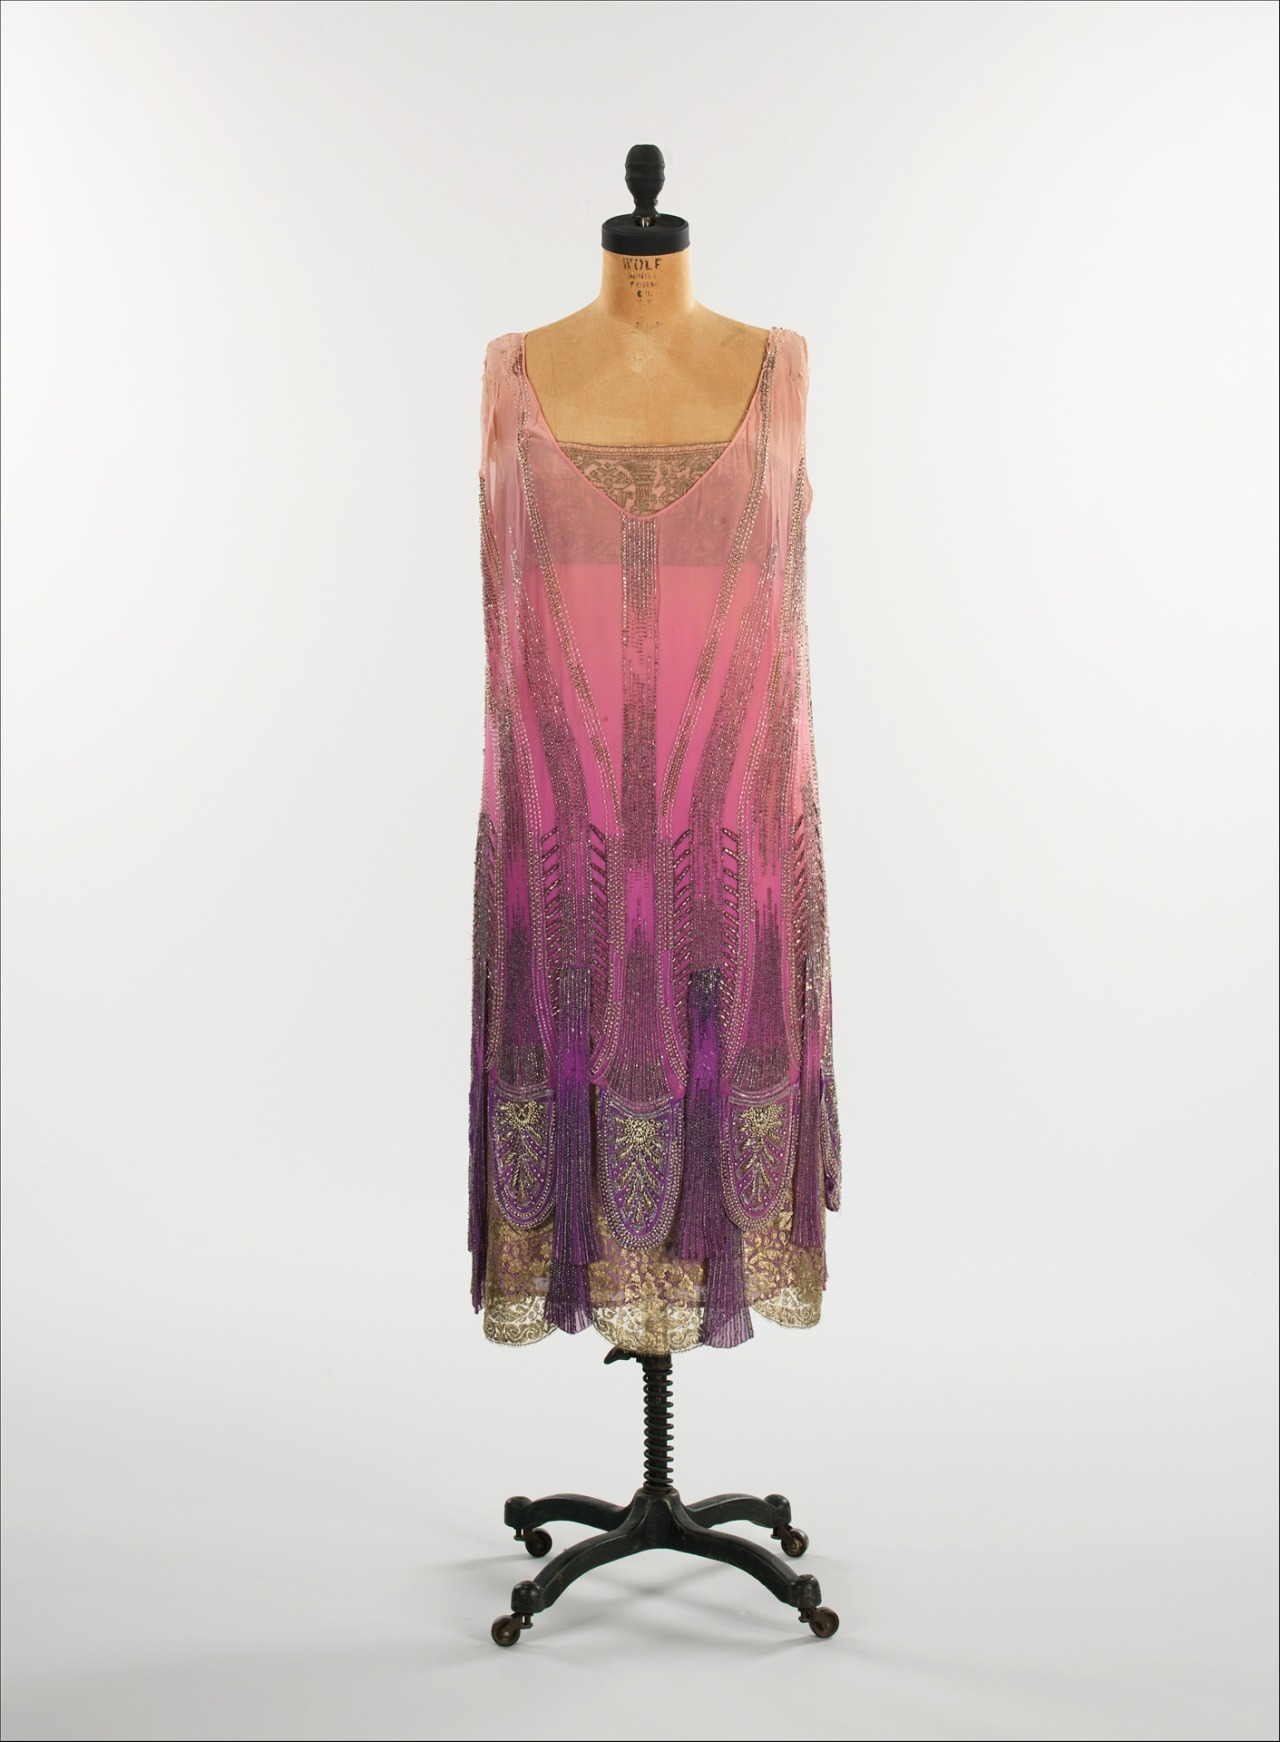 Twenties in Technicolor: Beaded Silk Dress, France c. 1925 (via The Metropolitan Museum of Art)